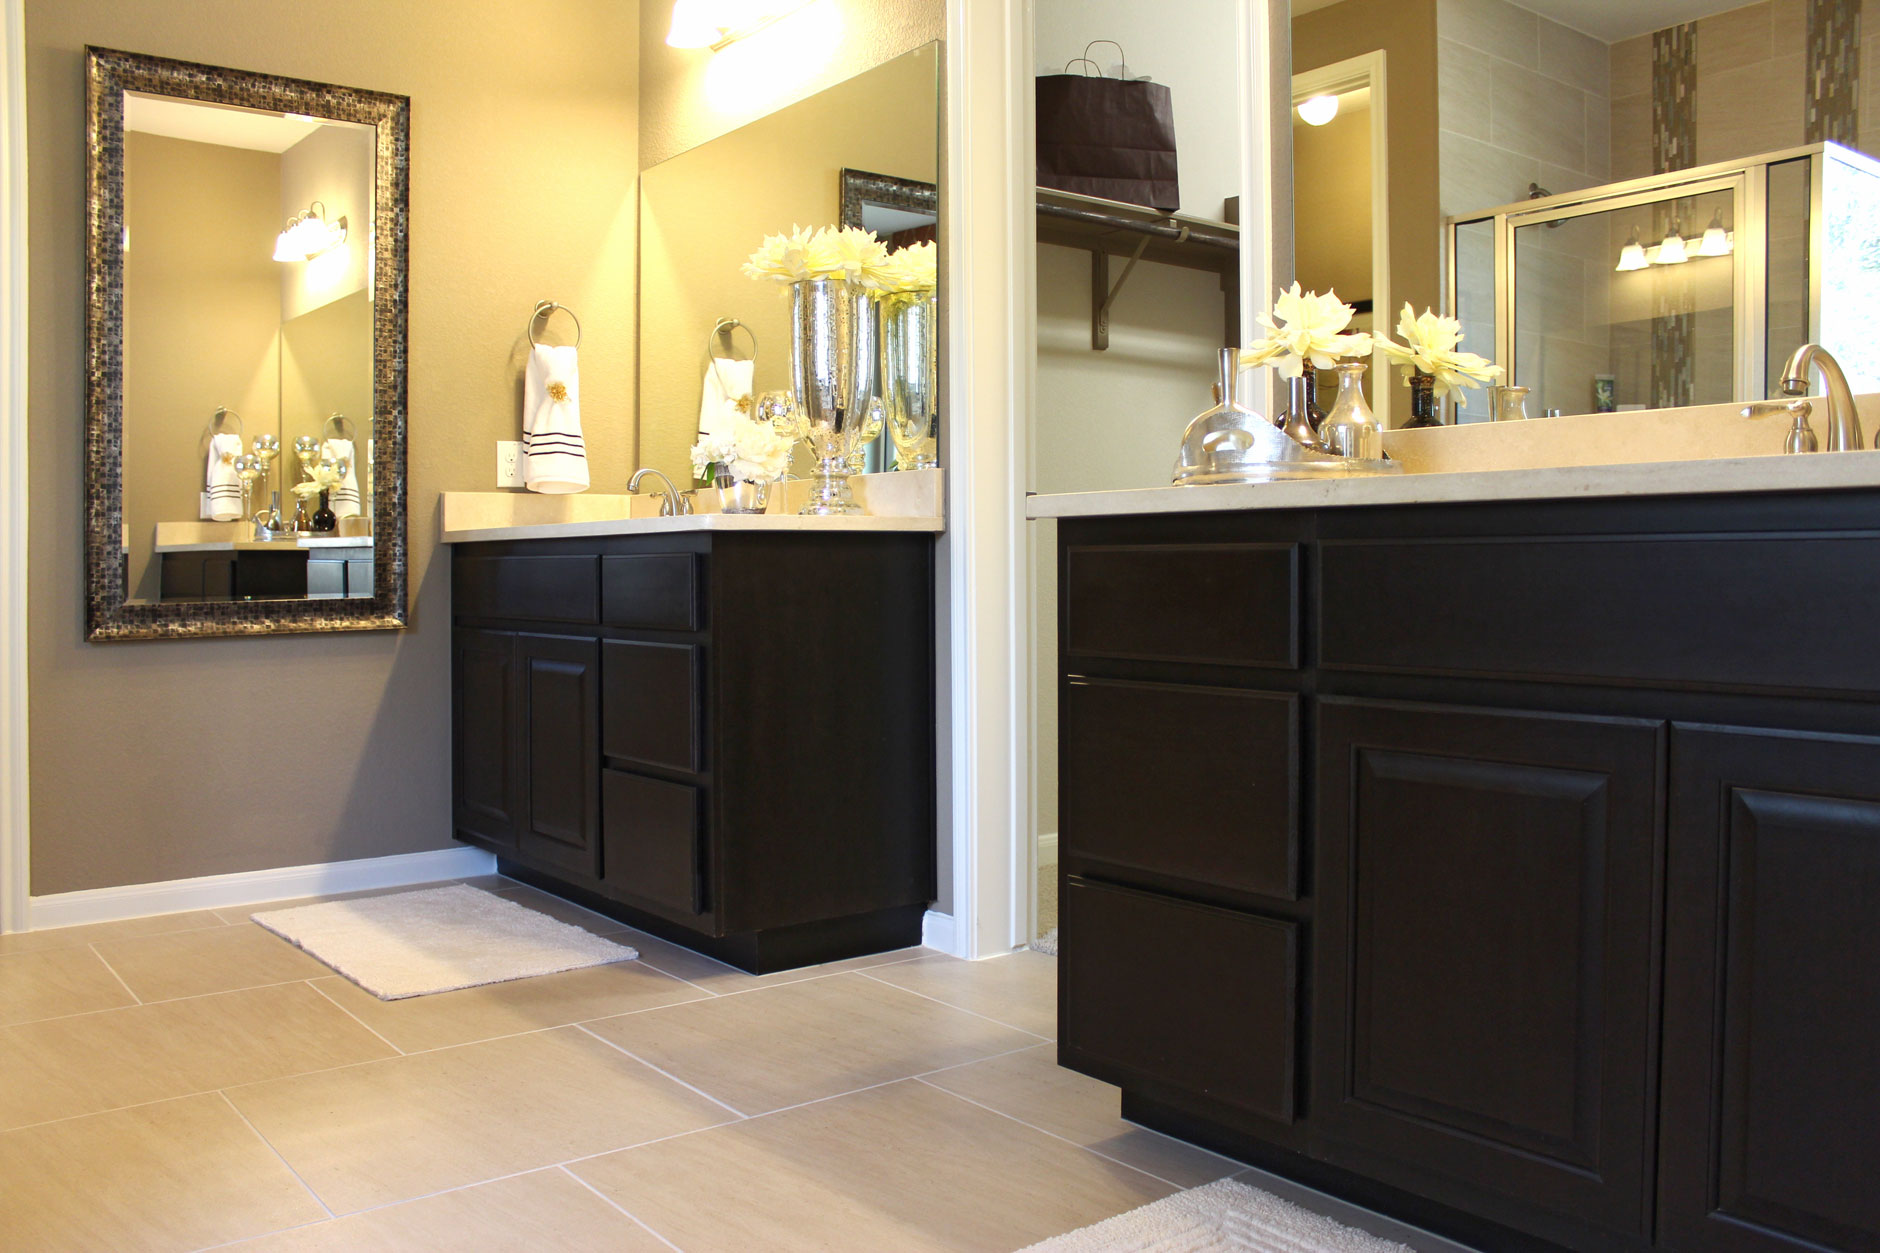 Master bath with separate vanities by Burrows Cabinets in Espresso